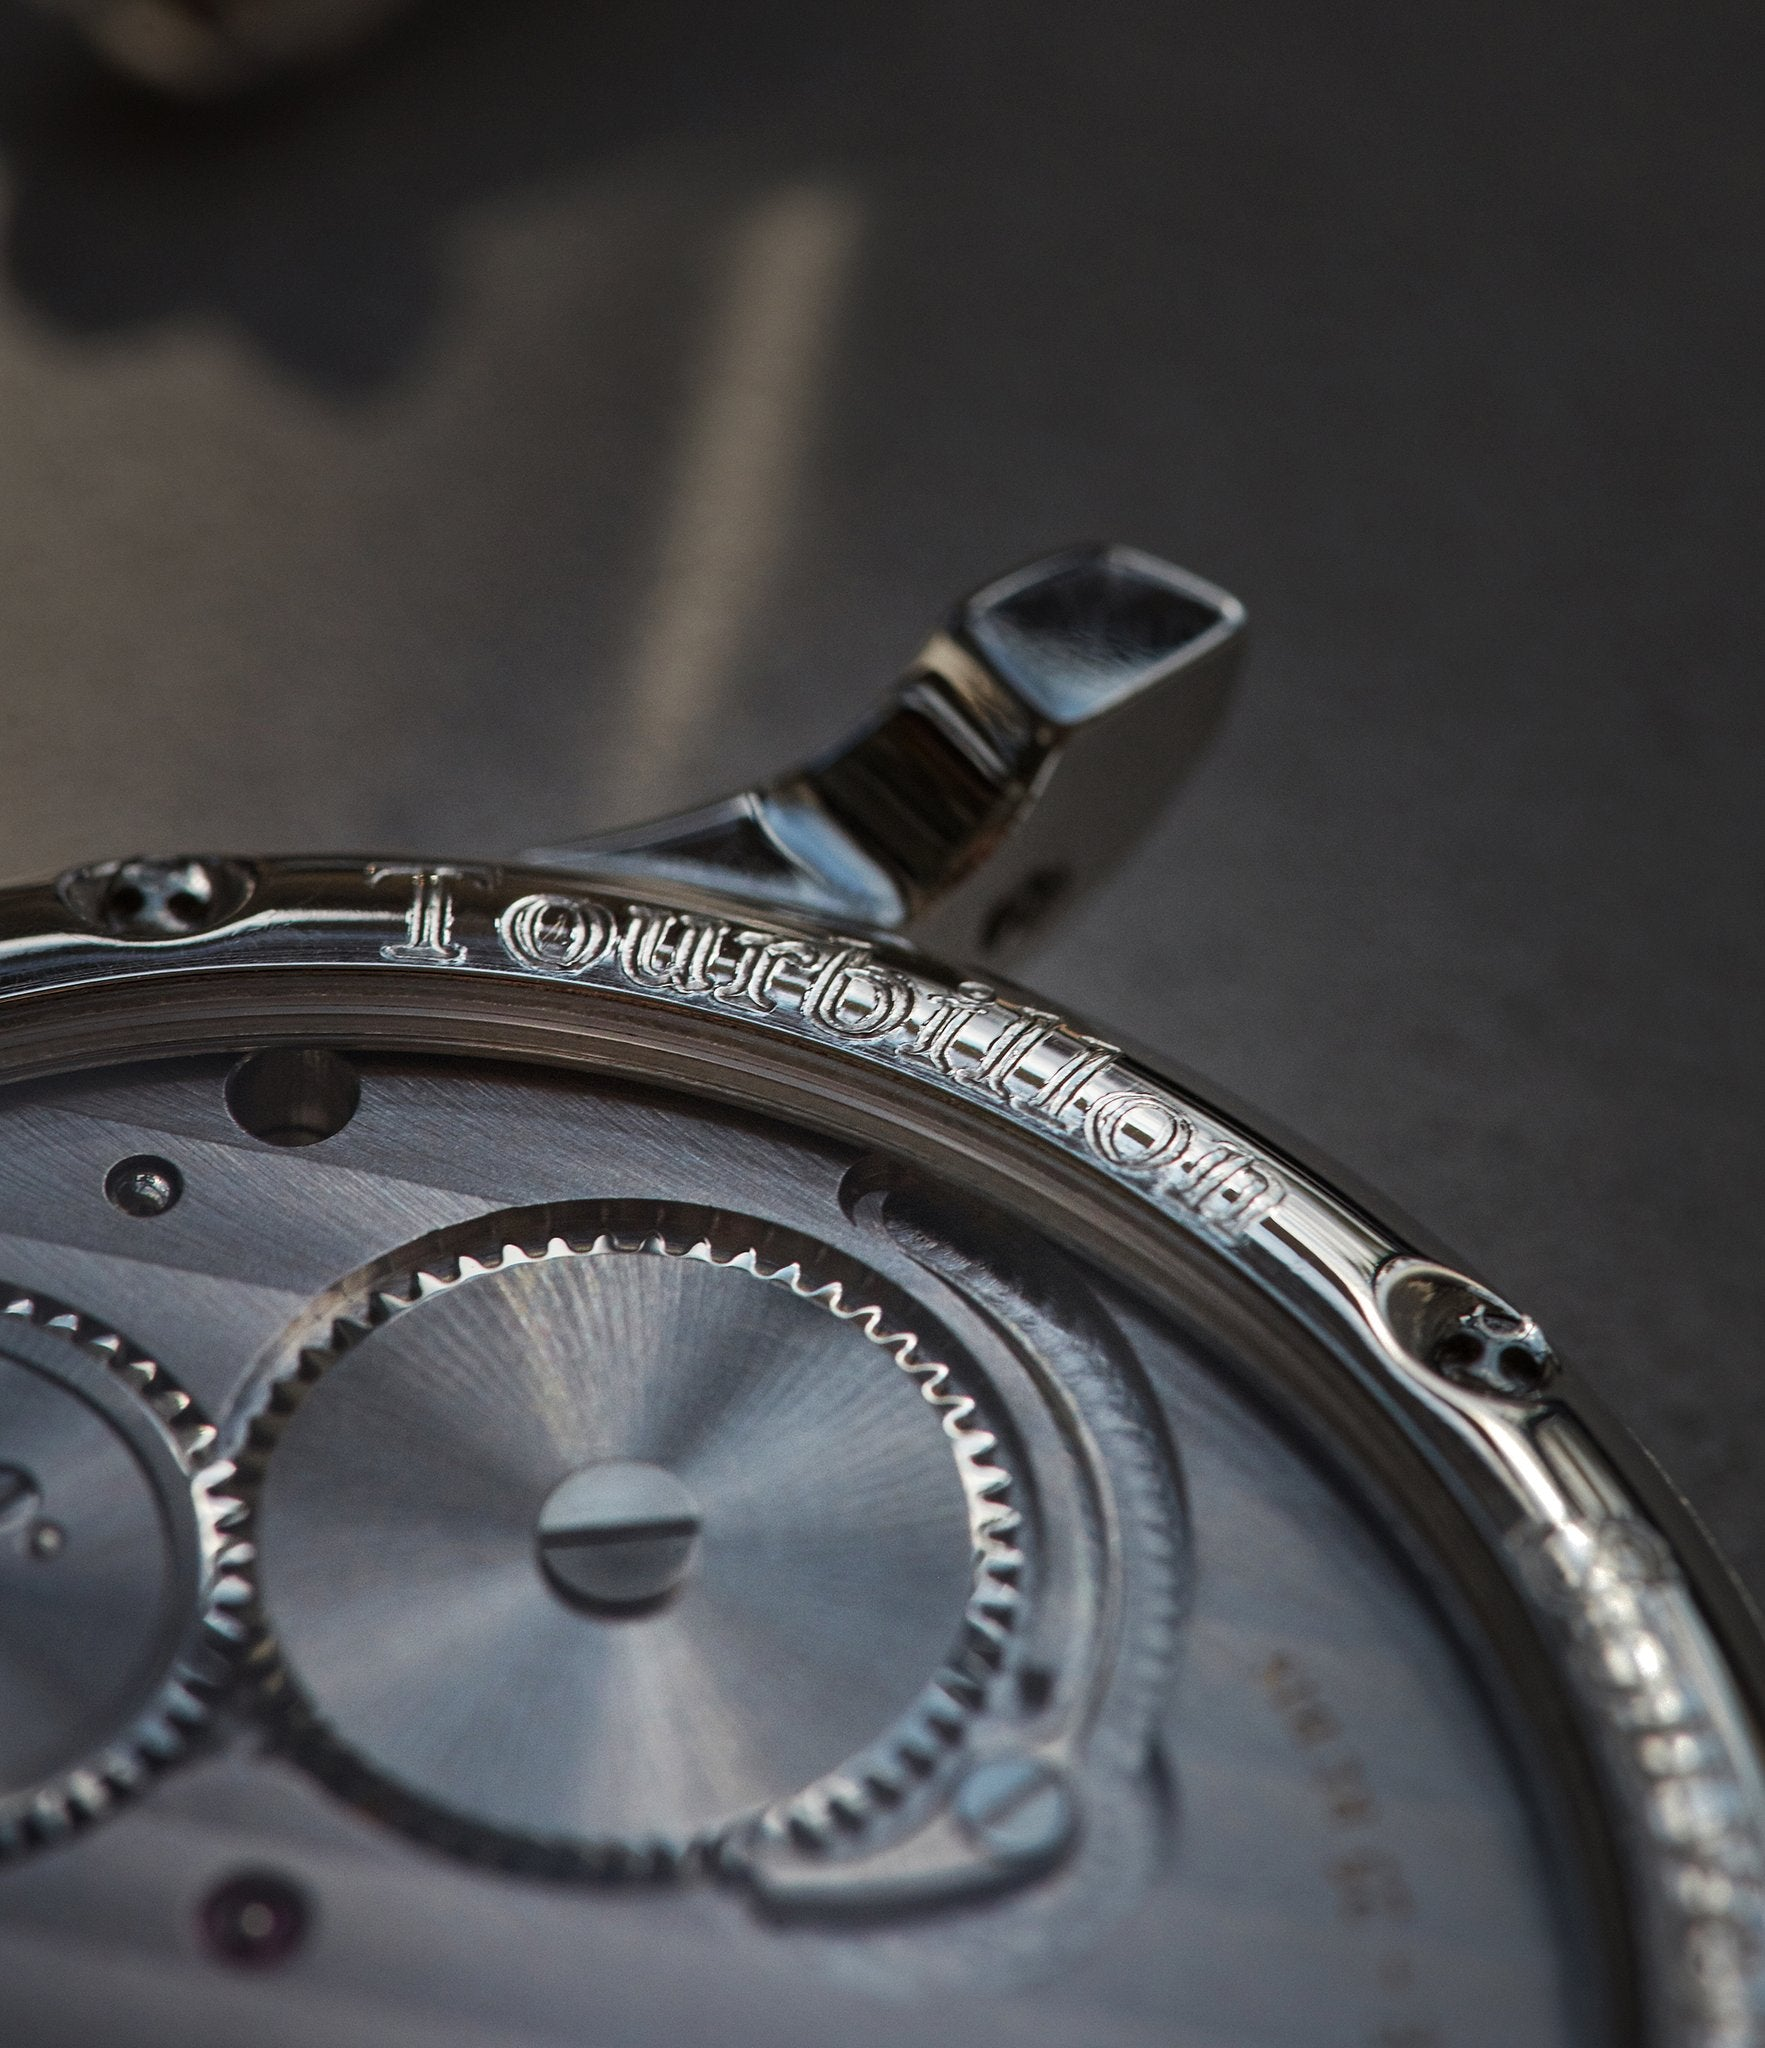 Small details found on early F.P. Journe pieces in The Rise of Neo-Vintage Watches for A Collected Man London